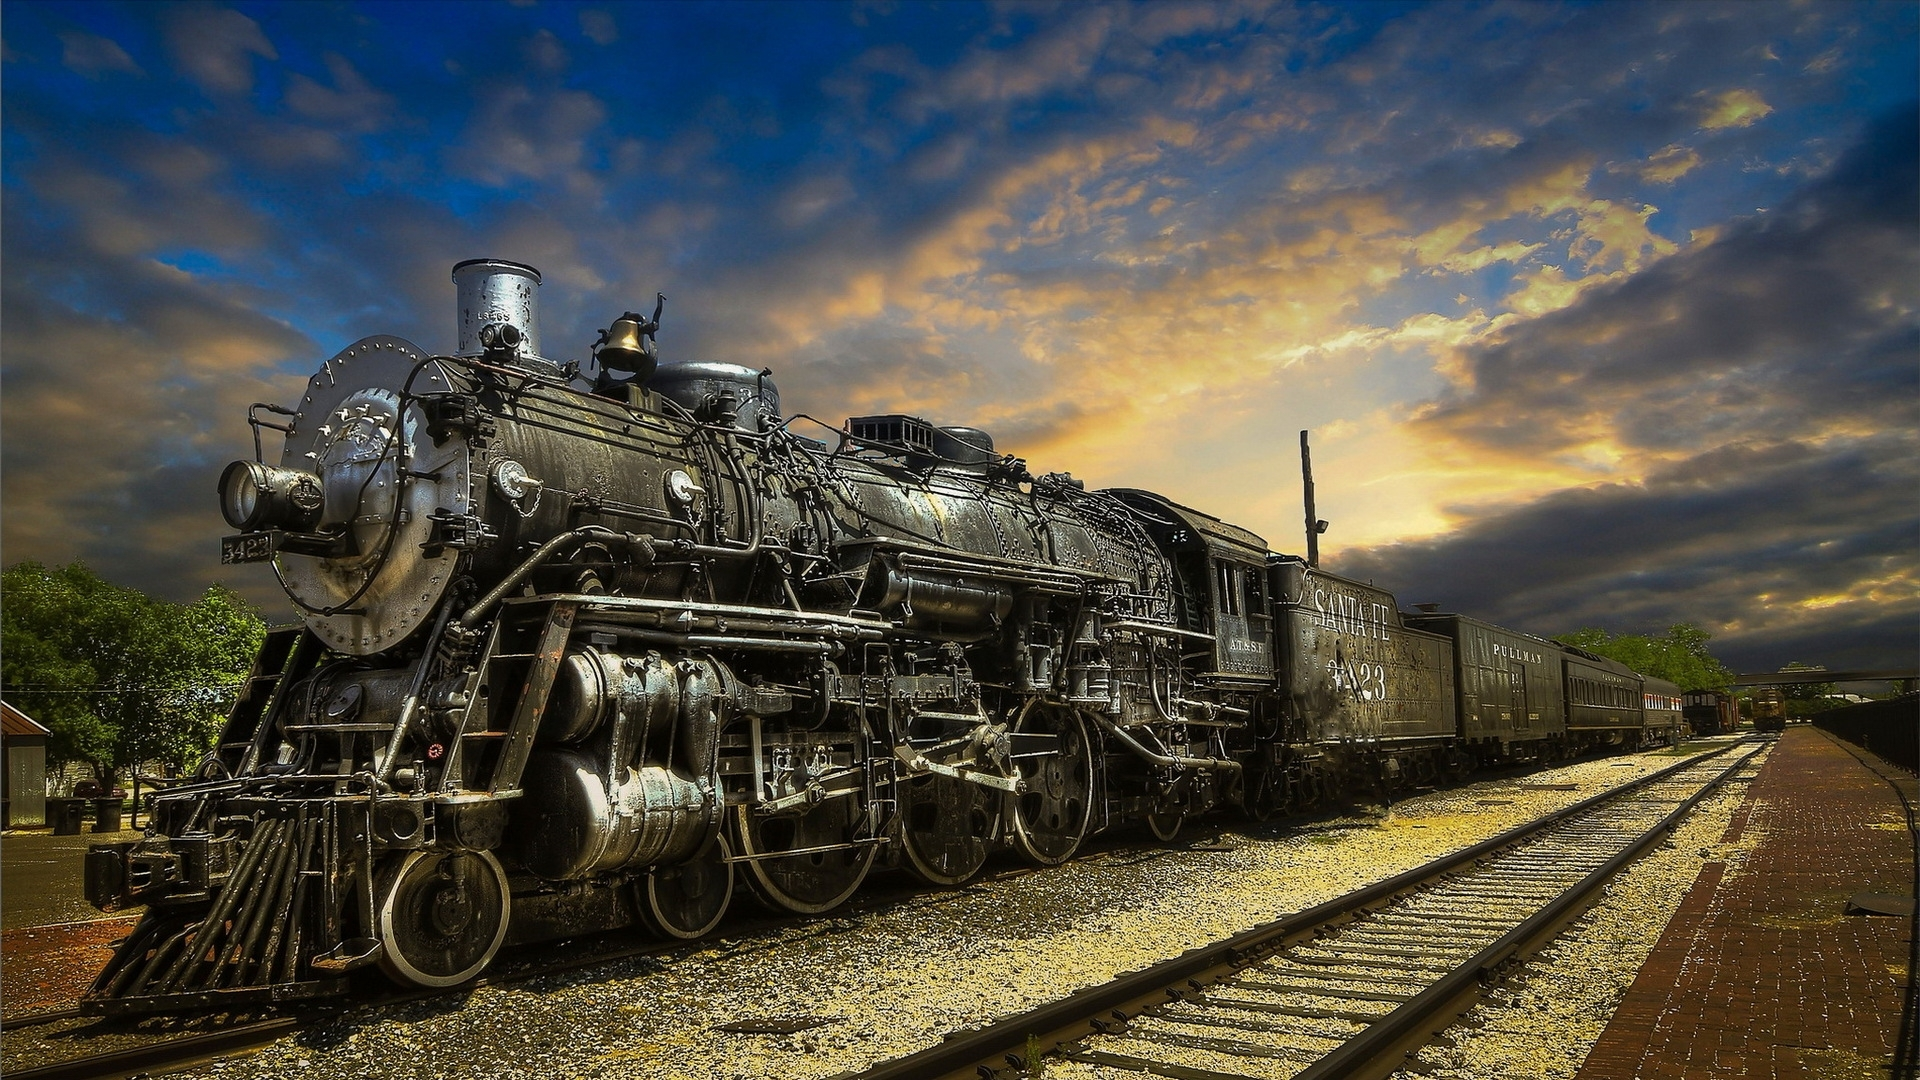 wallpaper.wiki-steam-engine-wallpaper-download-free-pic-wpe00877